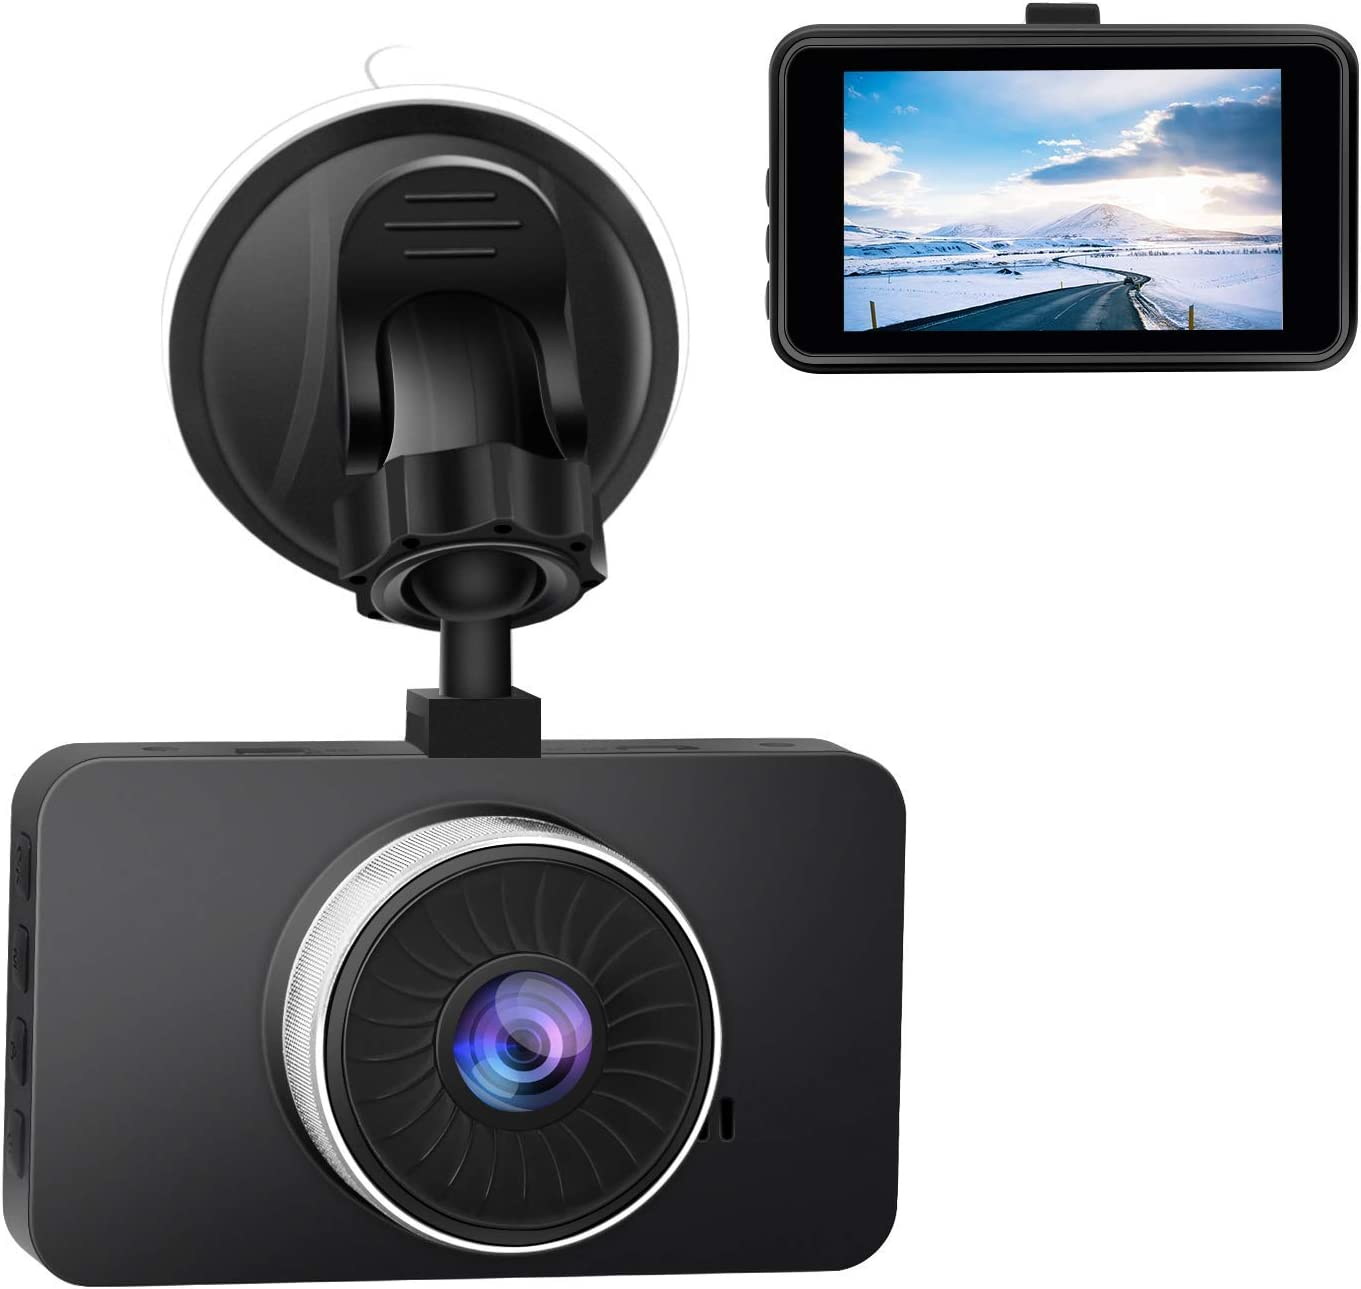 """CHICOM 3"""" Dash Cam Full HD 1080P, 170 Degree Wide Angle LCD Dashboard Camera Car Video Recorder with Night Vision, G-Sensor, WDR, Loop Recording, Motion Detection, Parking Monitor"""